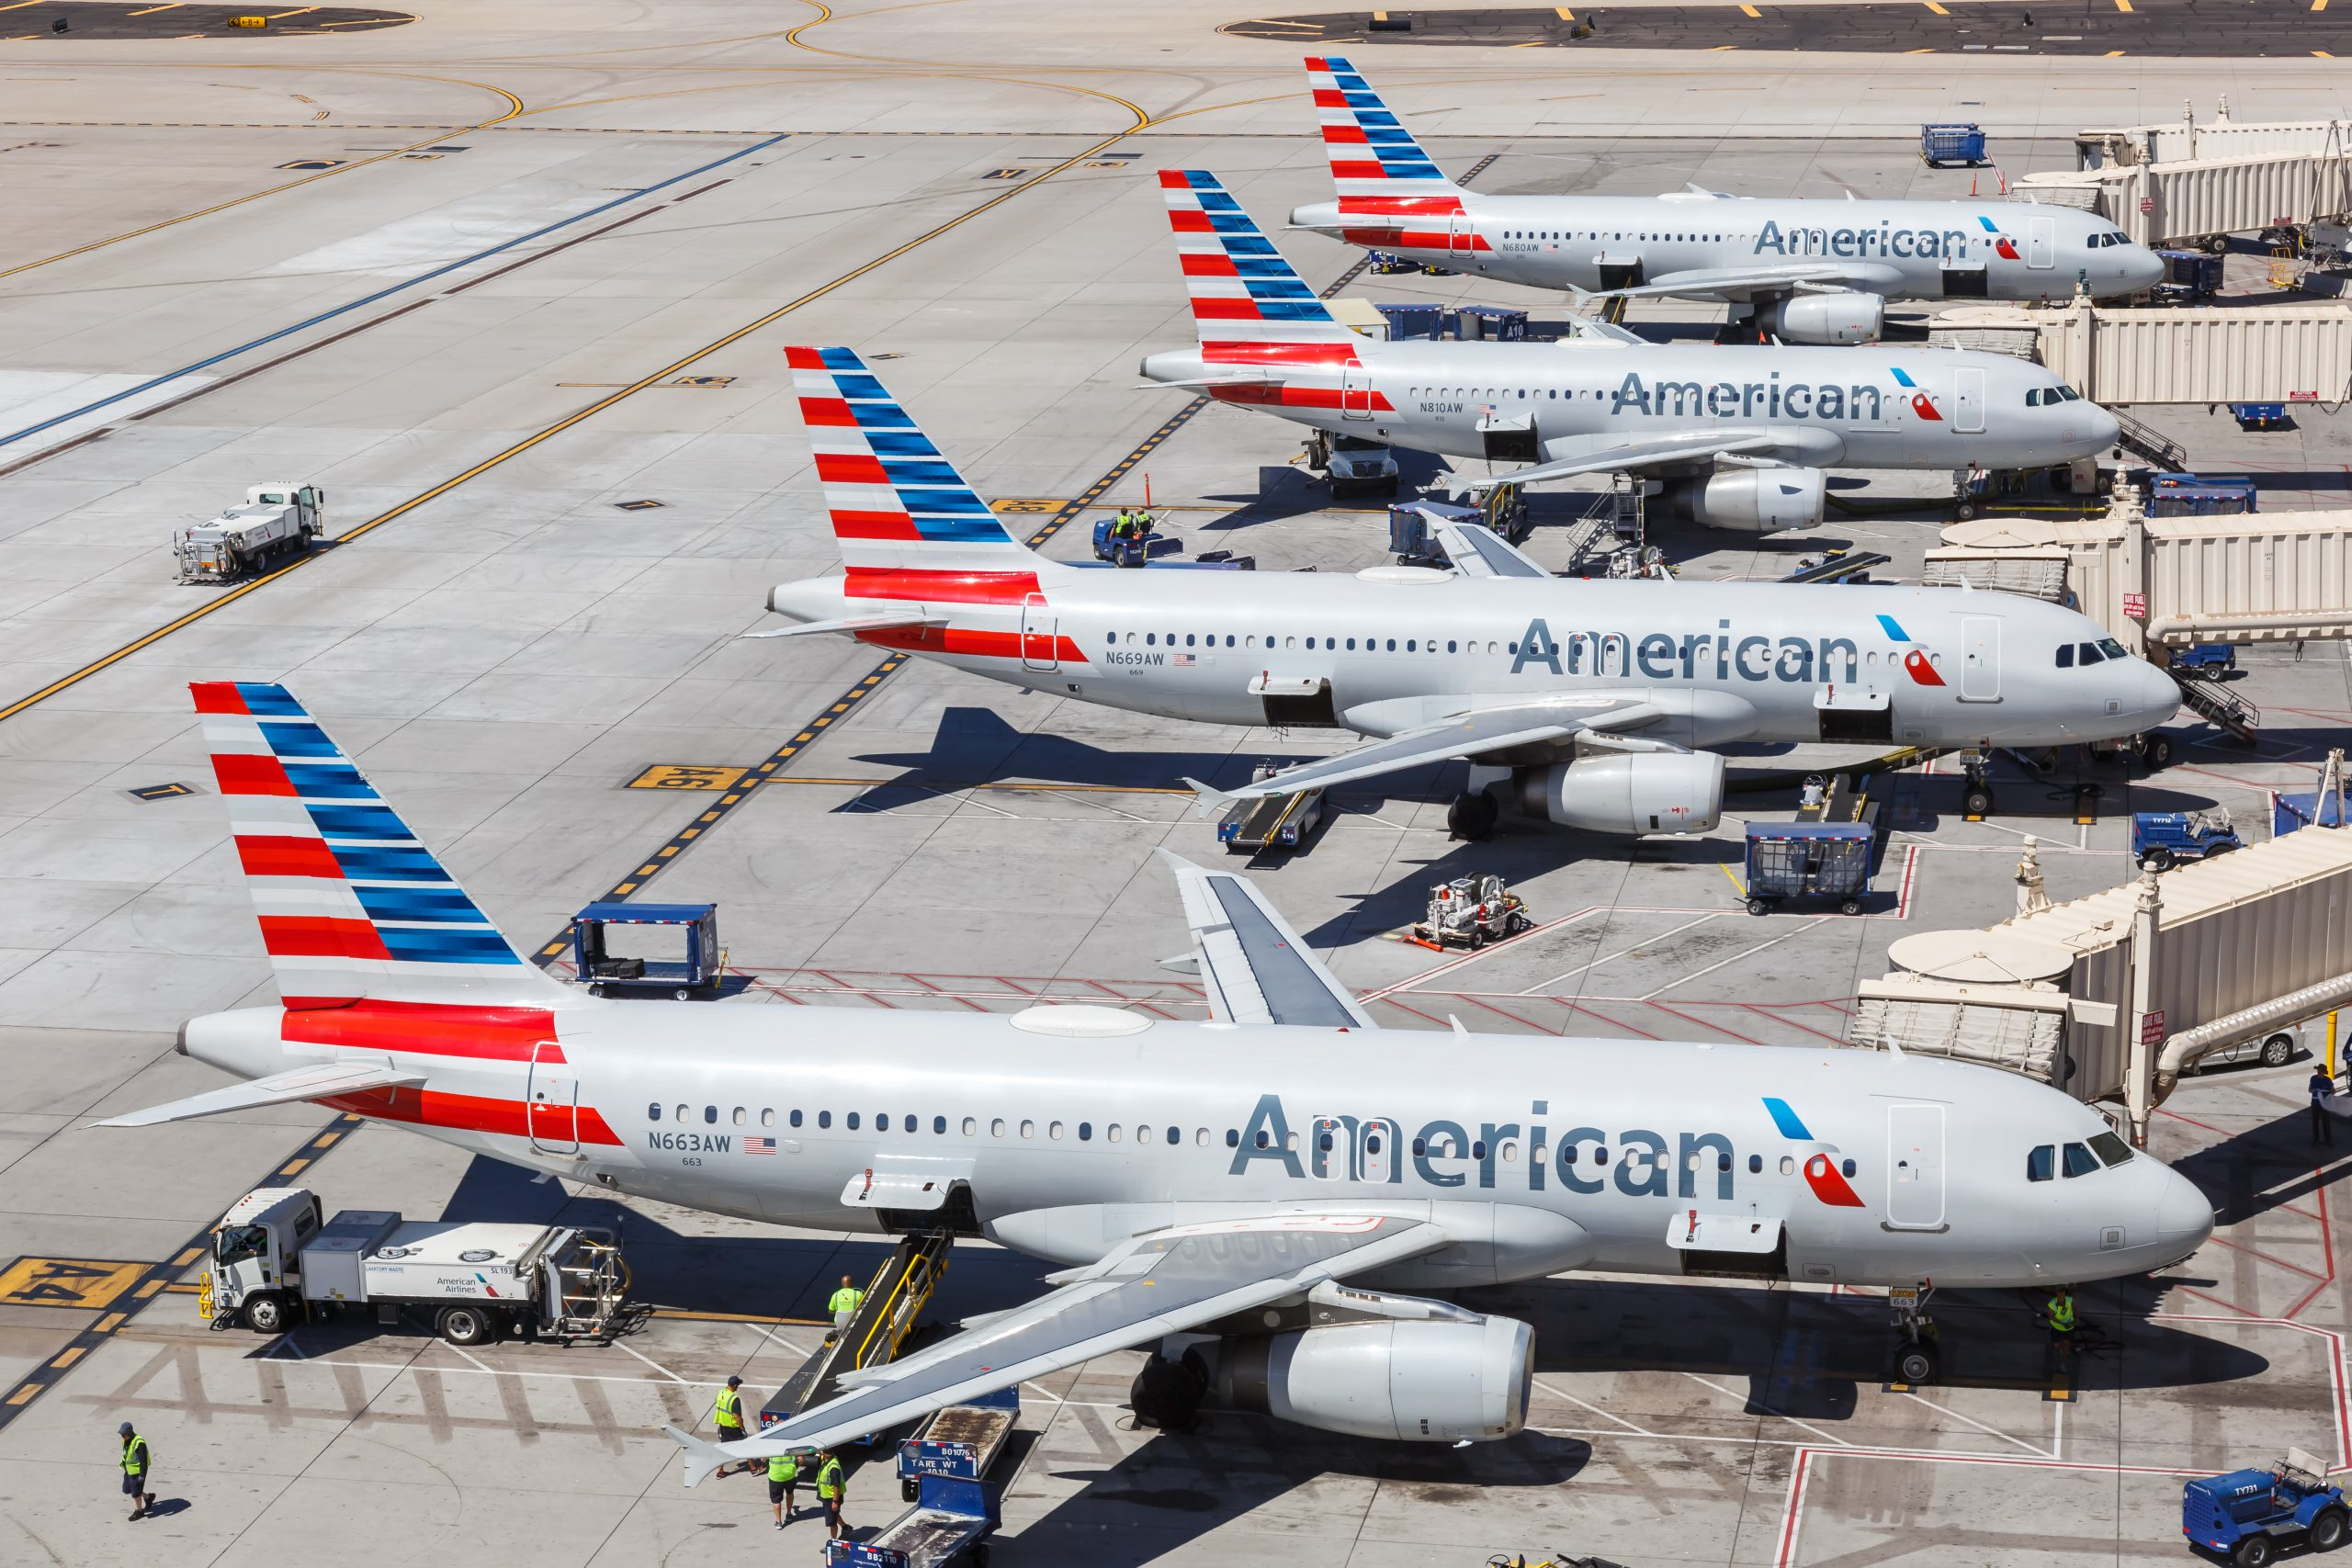 American Airlines Pilots Union Thinks Vaccine Mandate Will Lead to Mass Termination of Unvaccinated Pilots